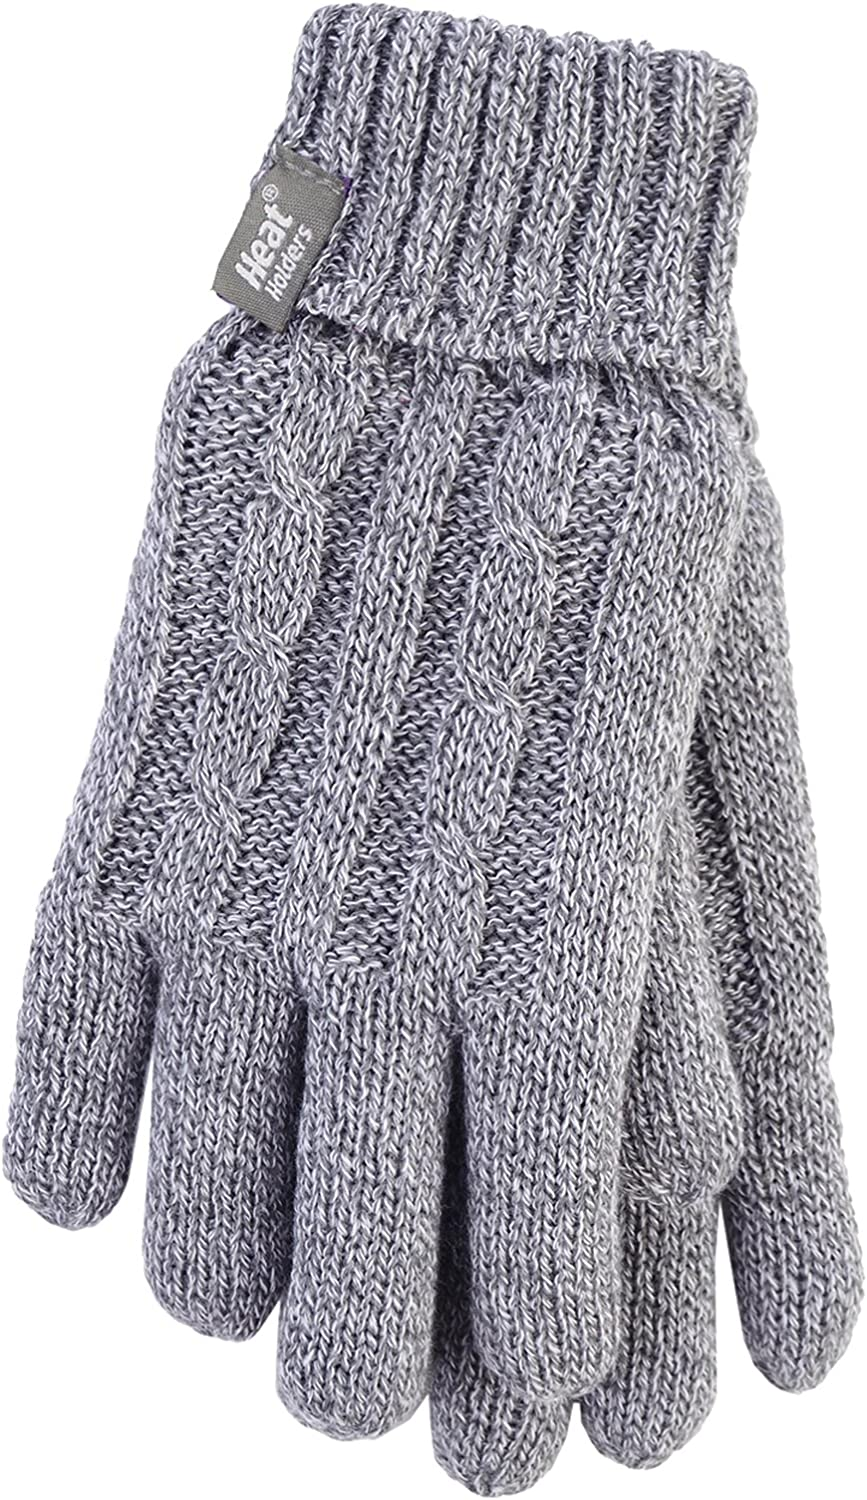 Heat Holders - Women's Thermal Heat Weaver Cable Knit 2.3 Tog Gloves - M/L